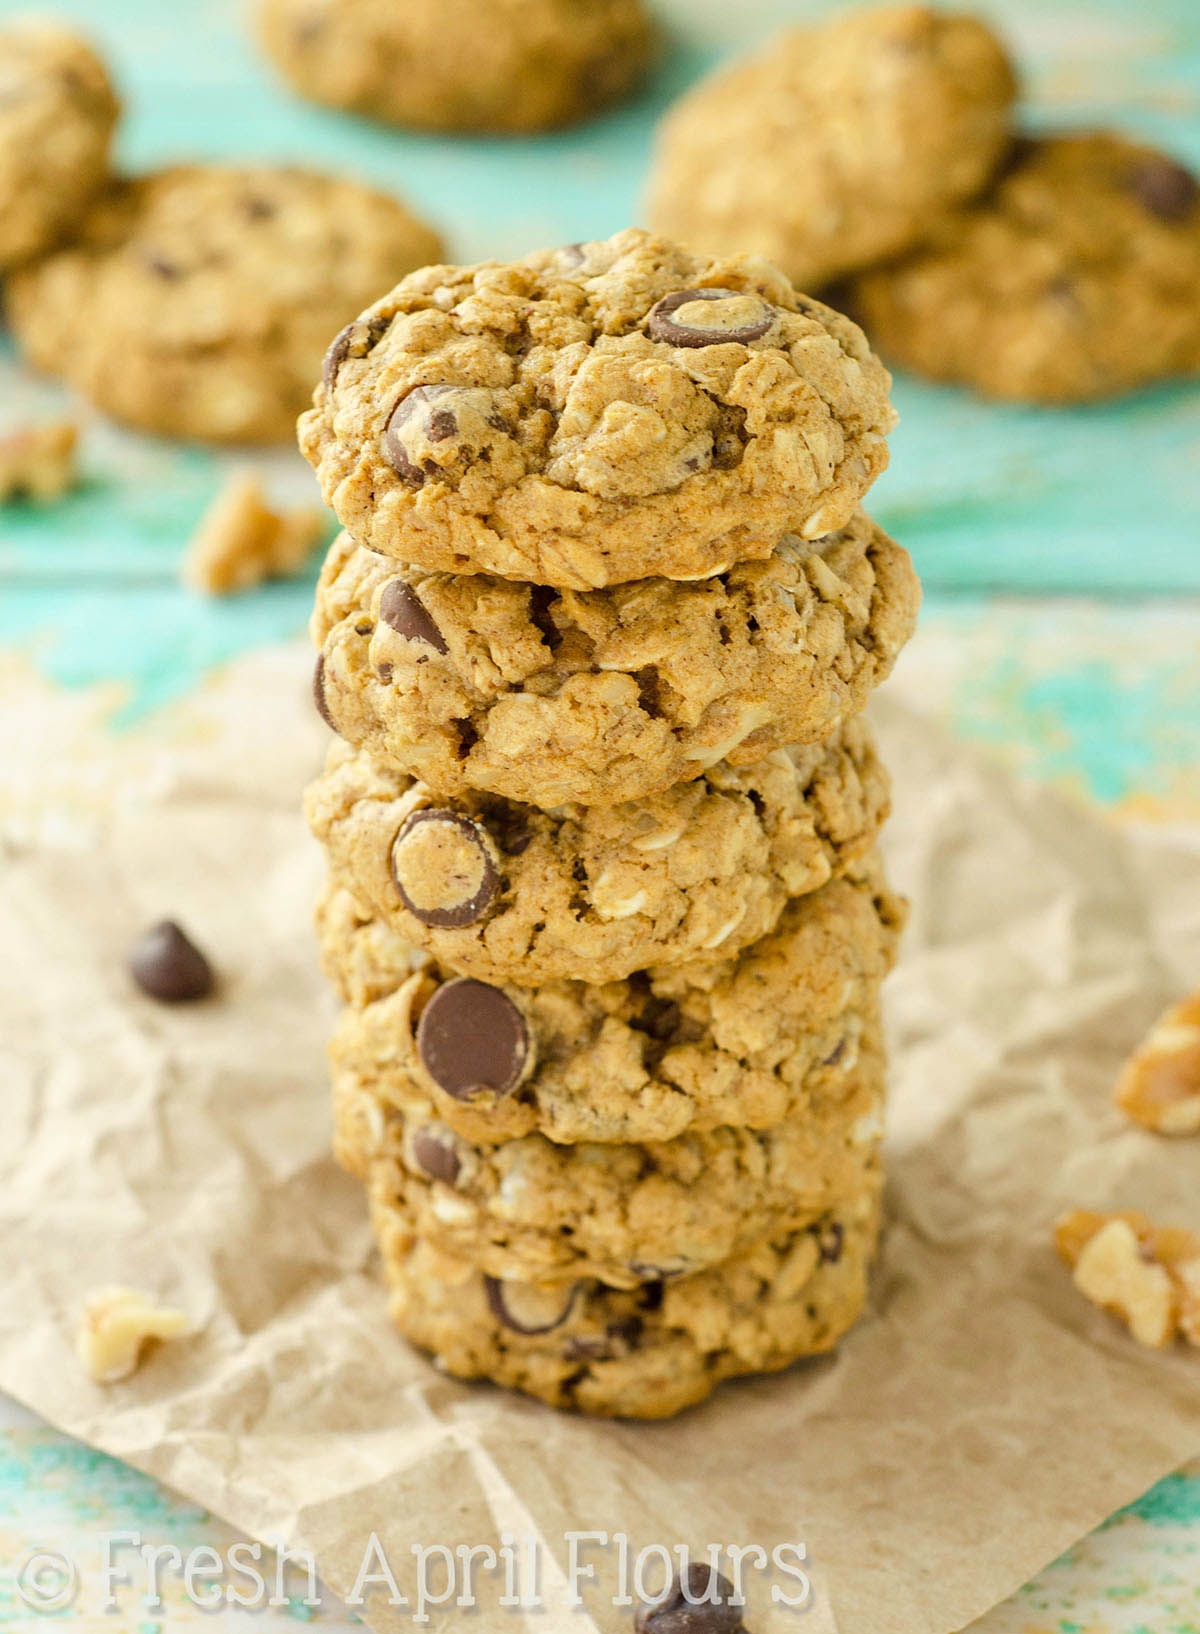 Oatmeal Chocolate Chip Walnut Cookies